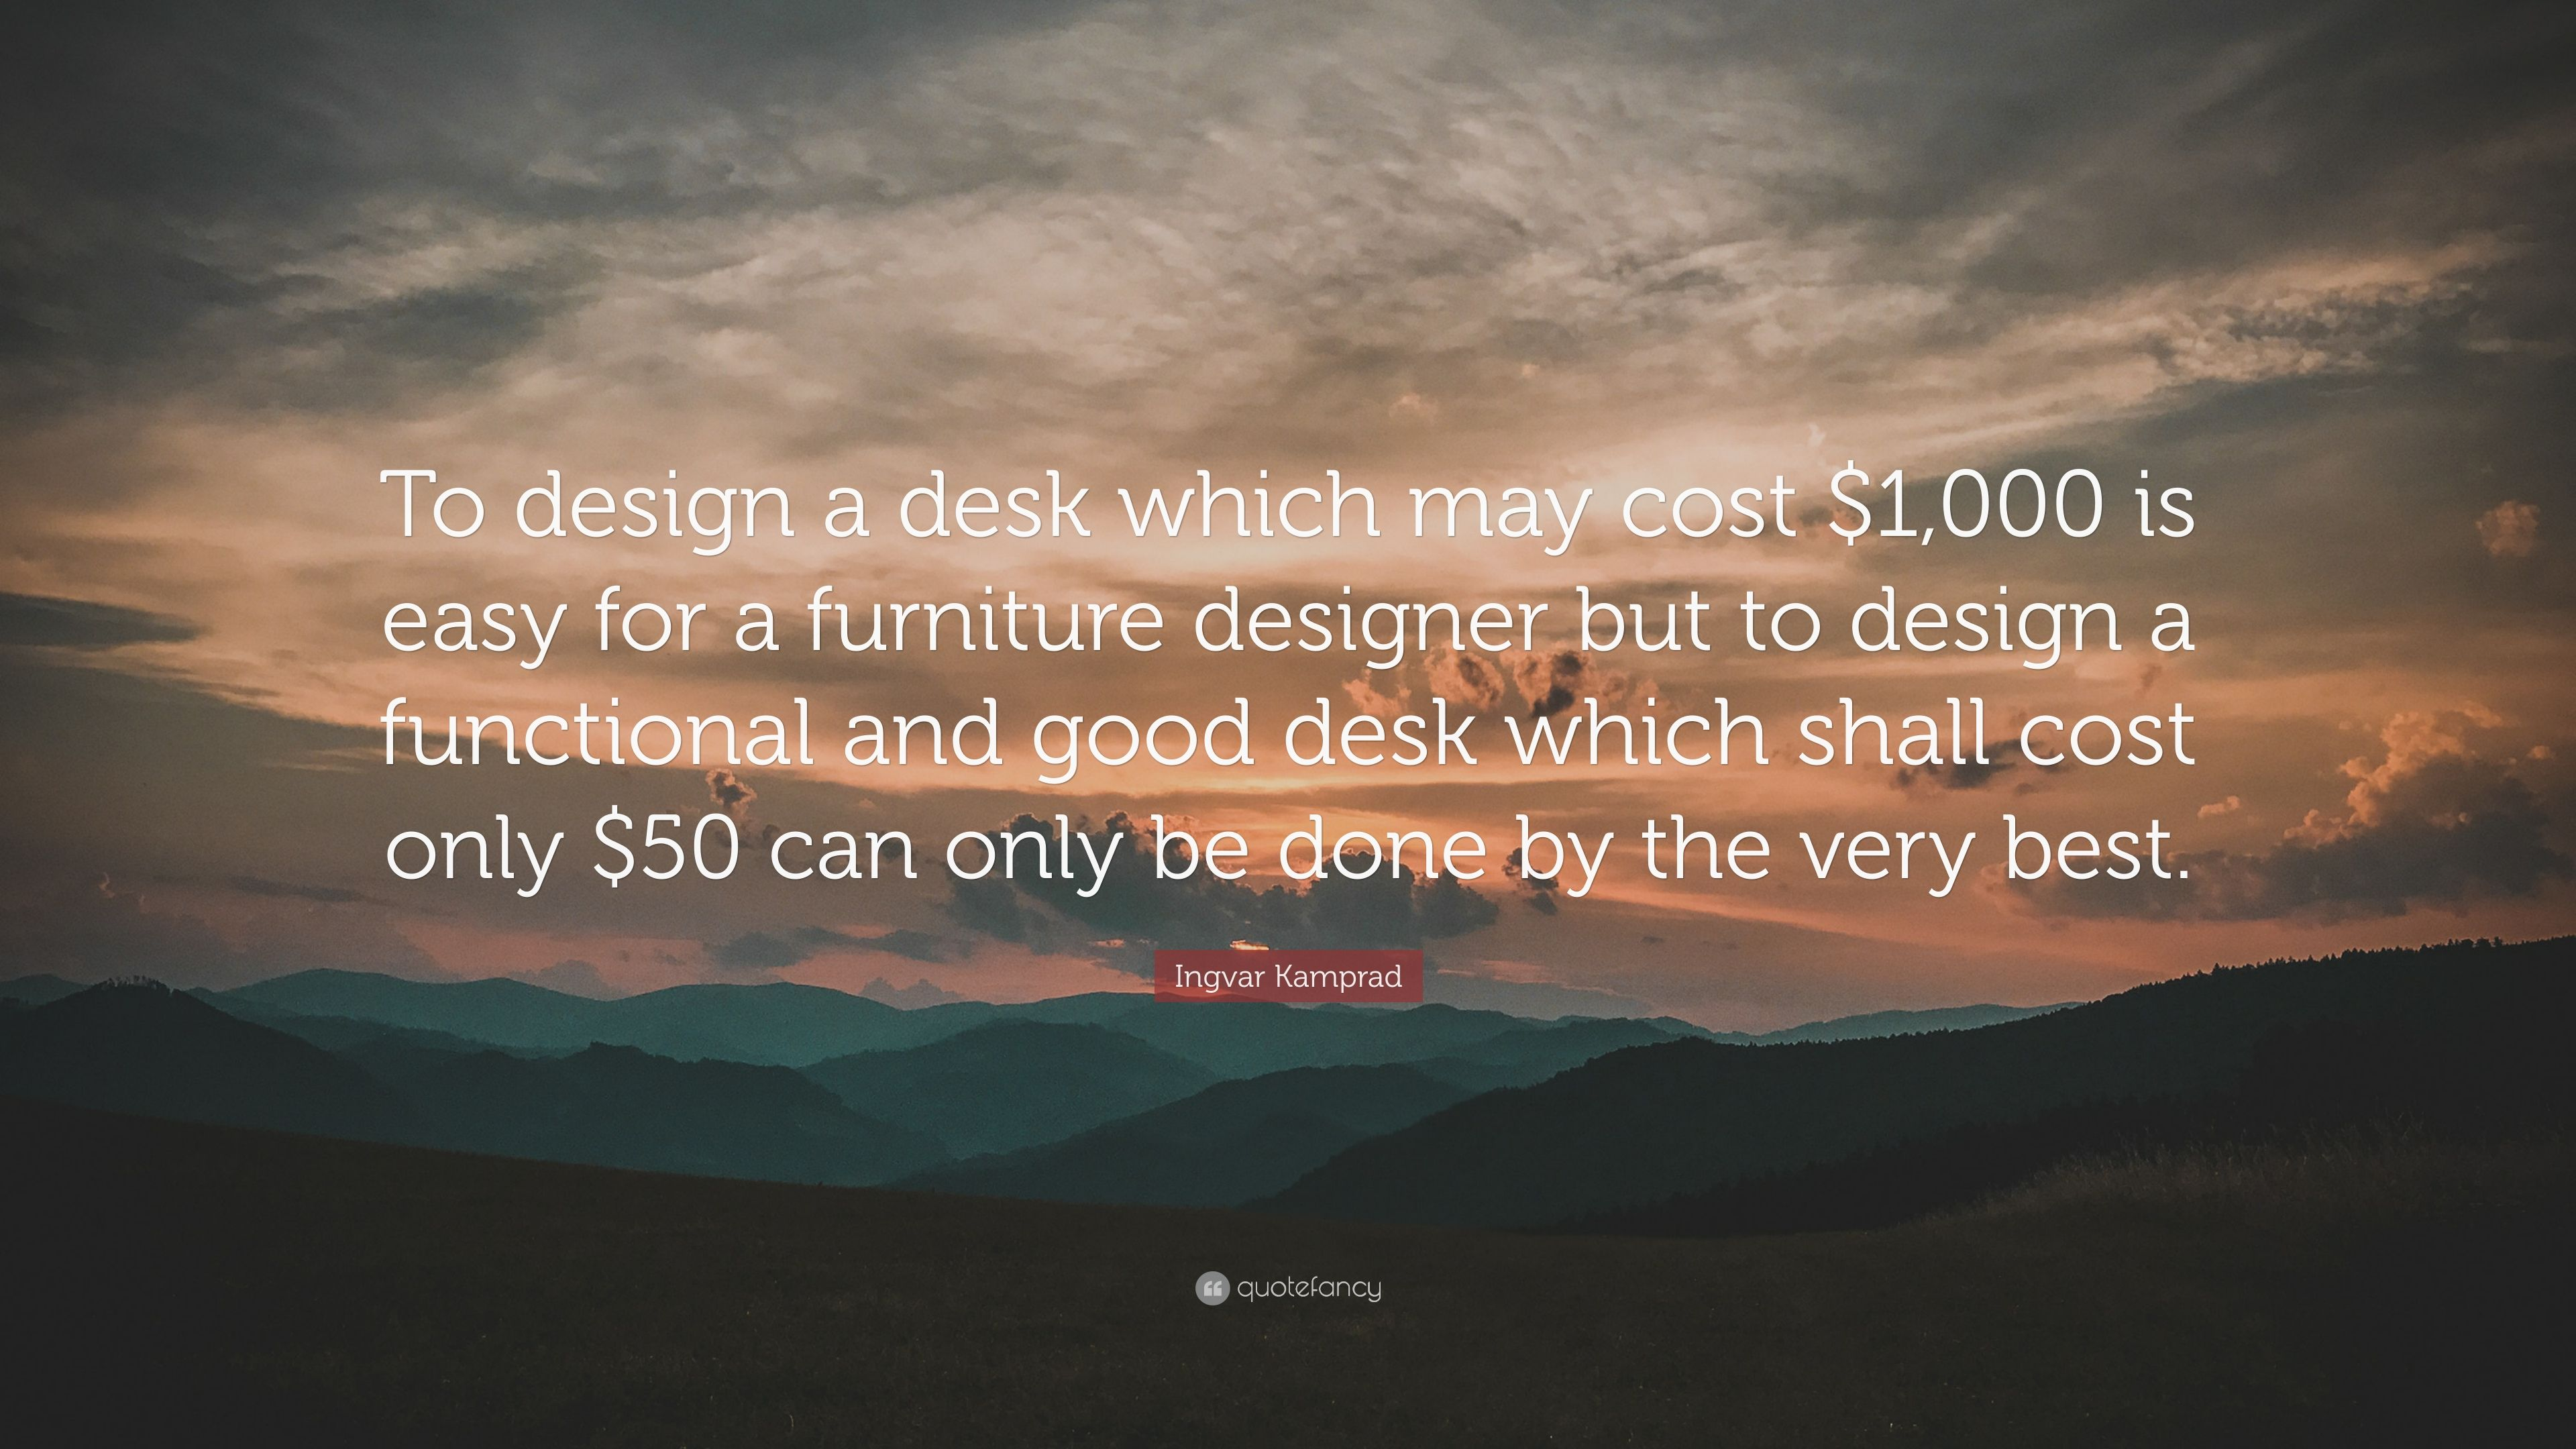 """ingvar kamprad quote """"to design a desk which cost is"""